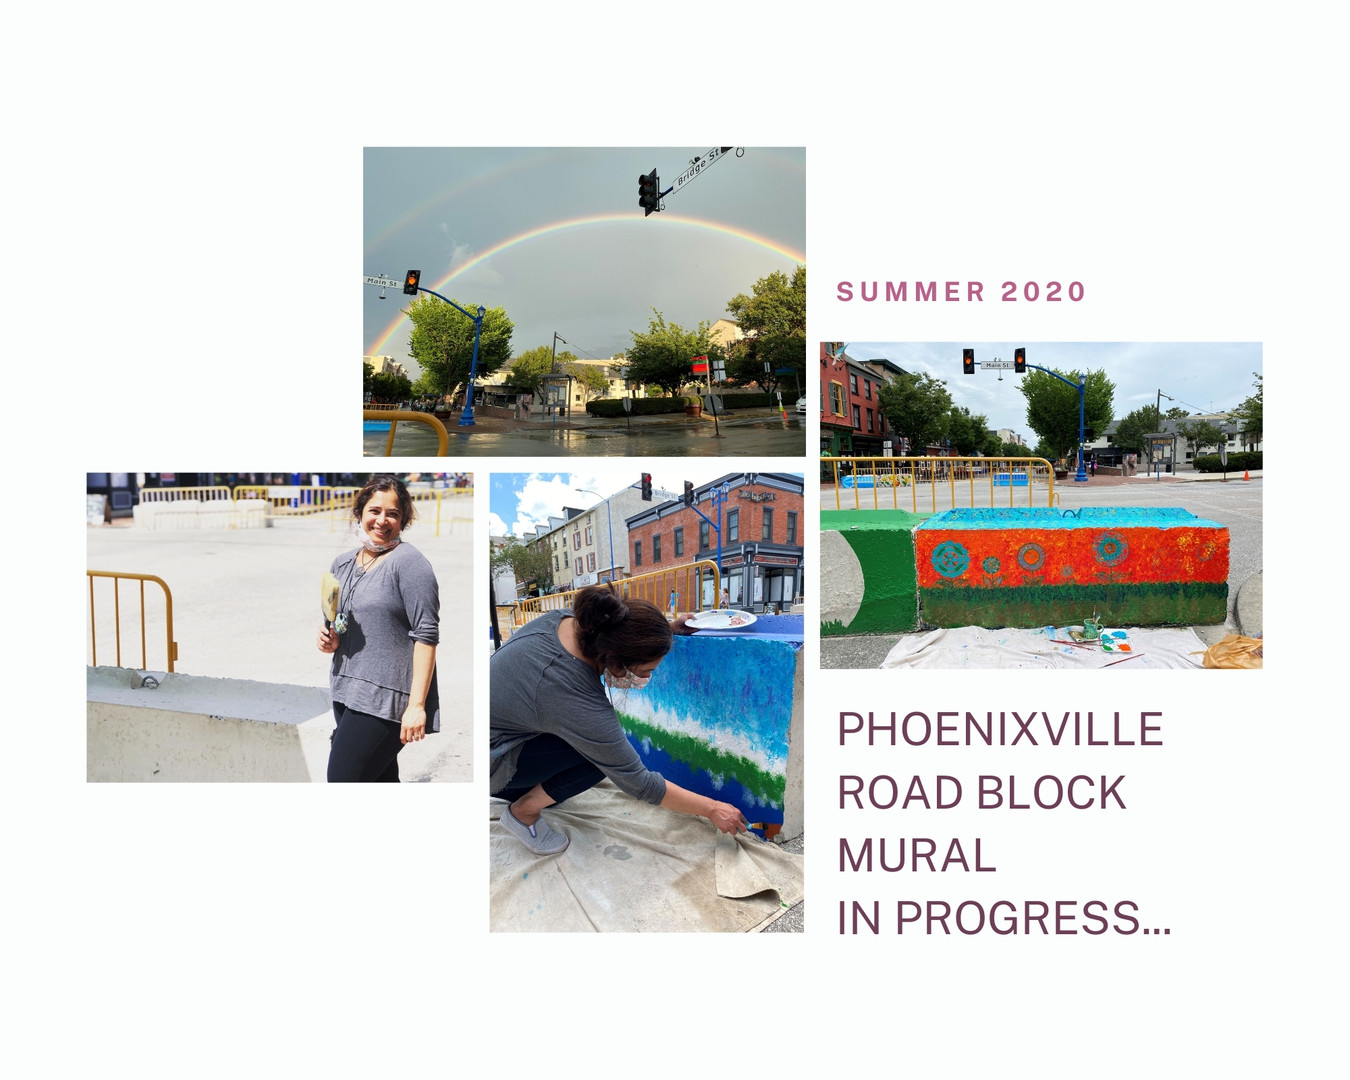 Phoenixville Road Block Mural Project